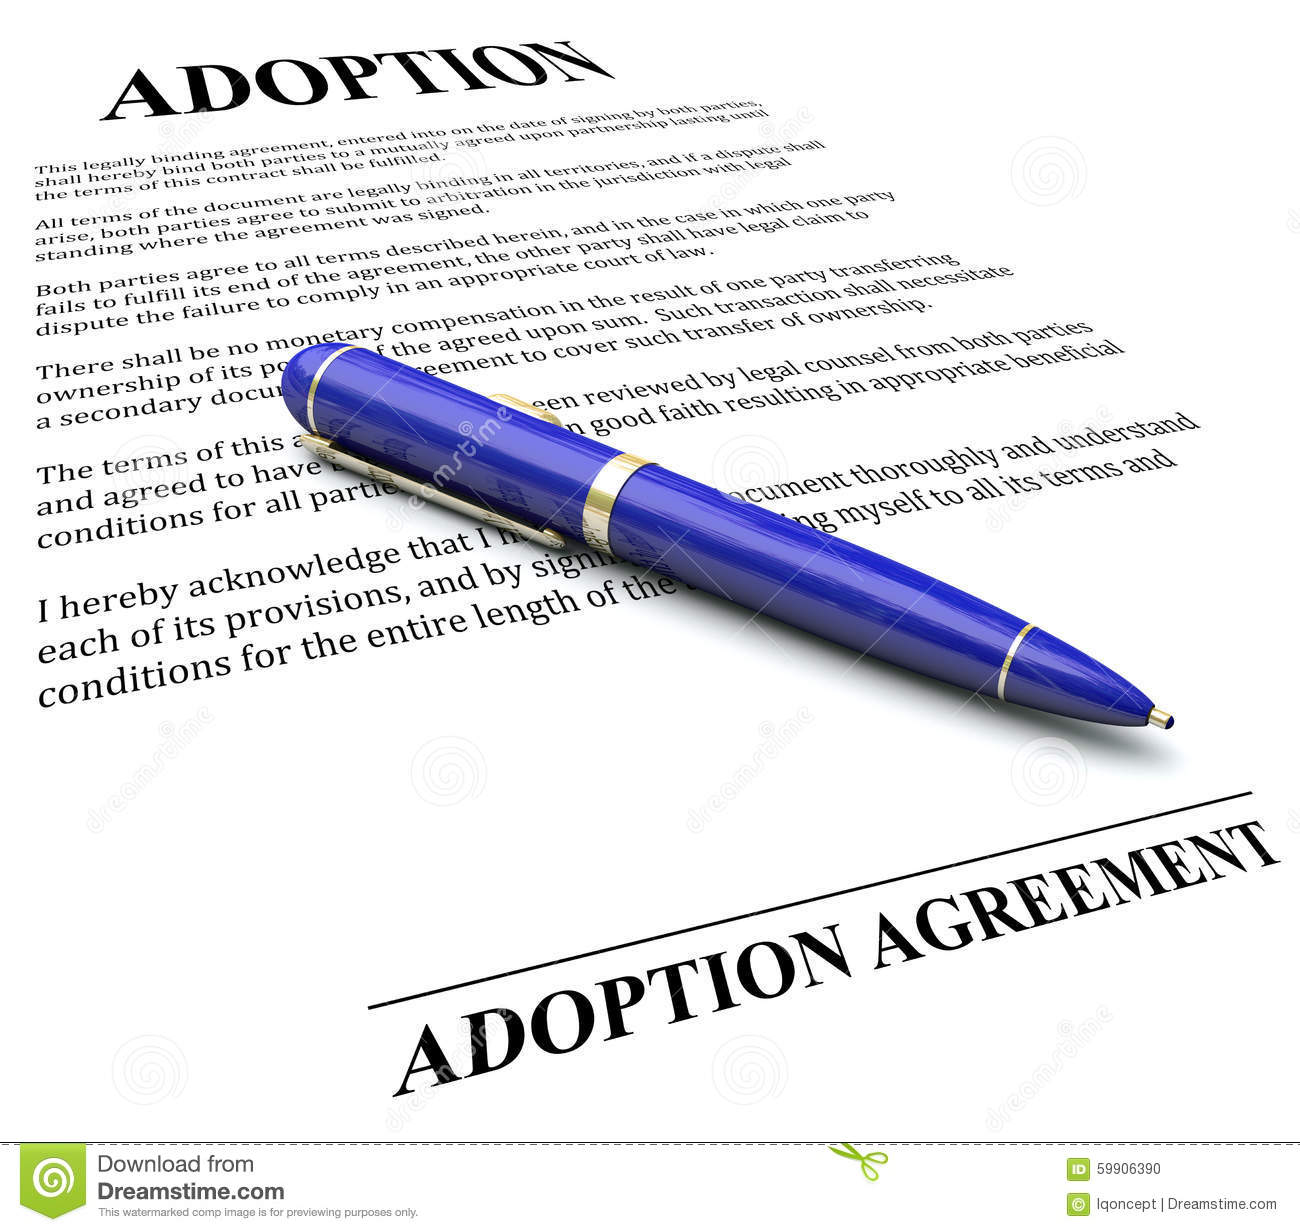 Adoption Agreement Contract Pen Signing Official Legal Document